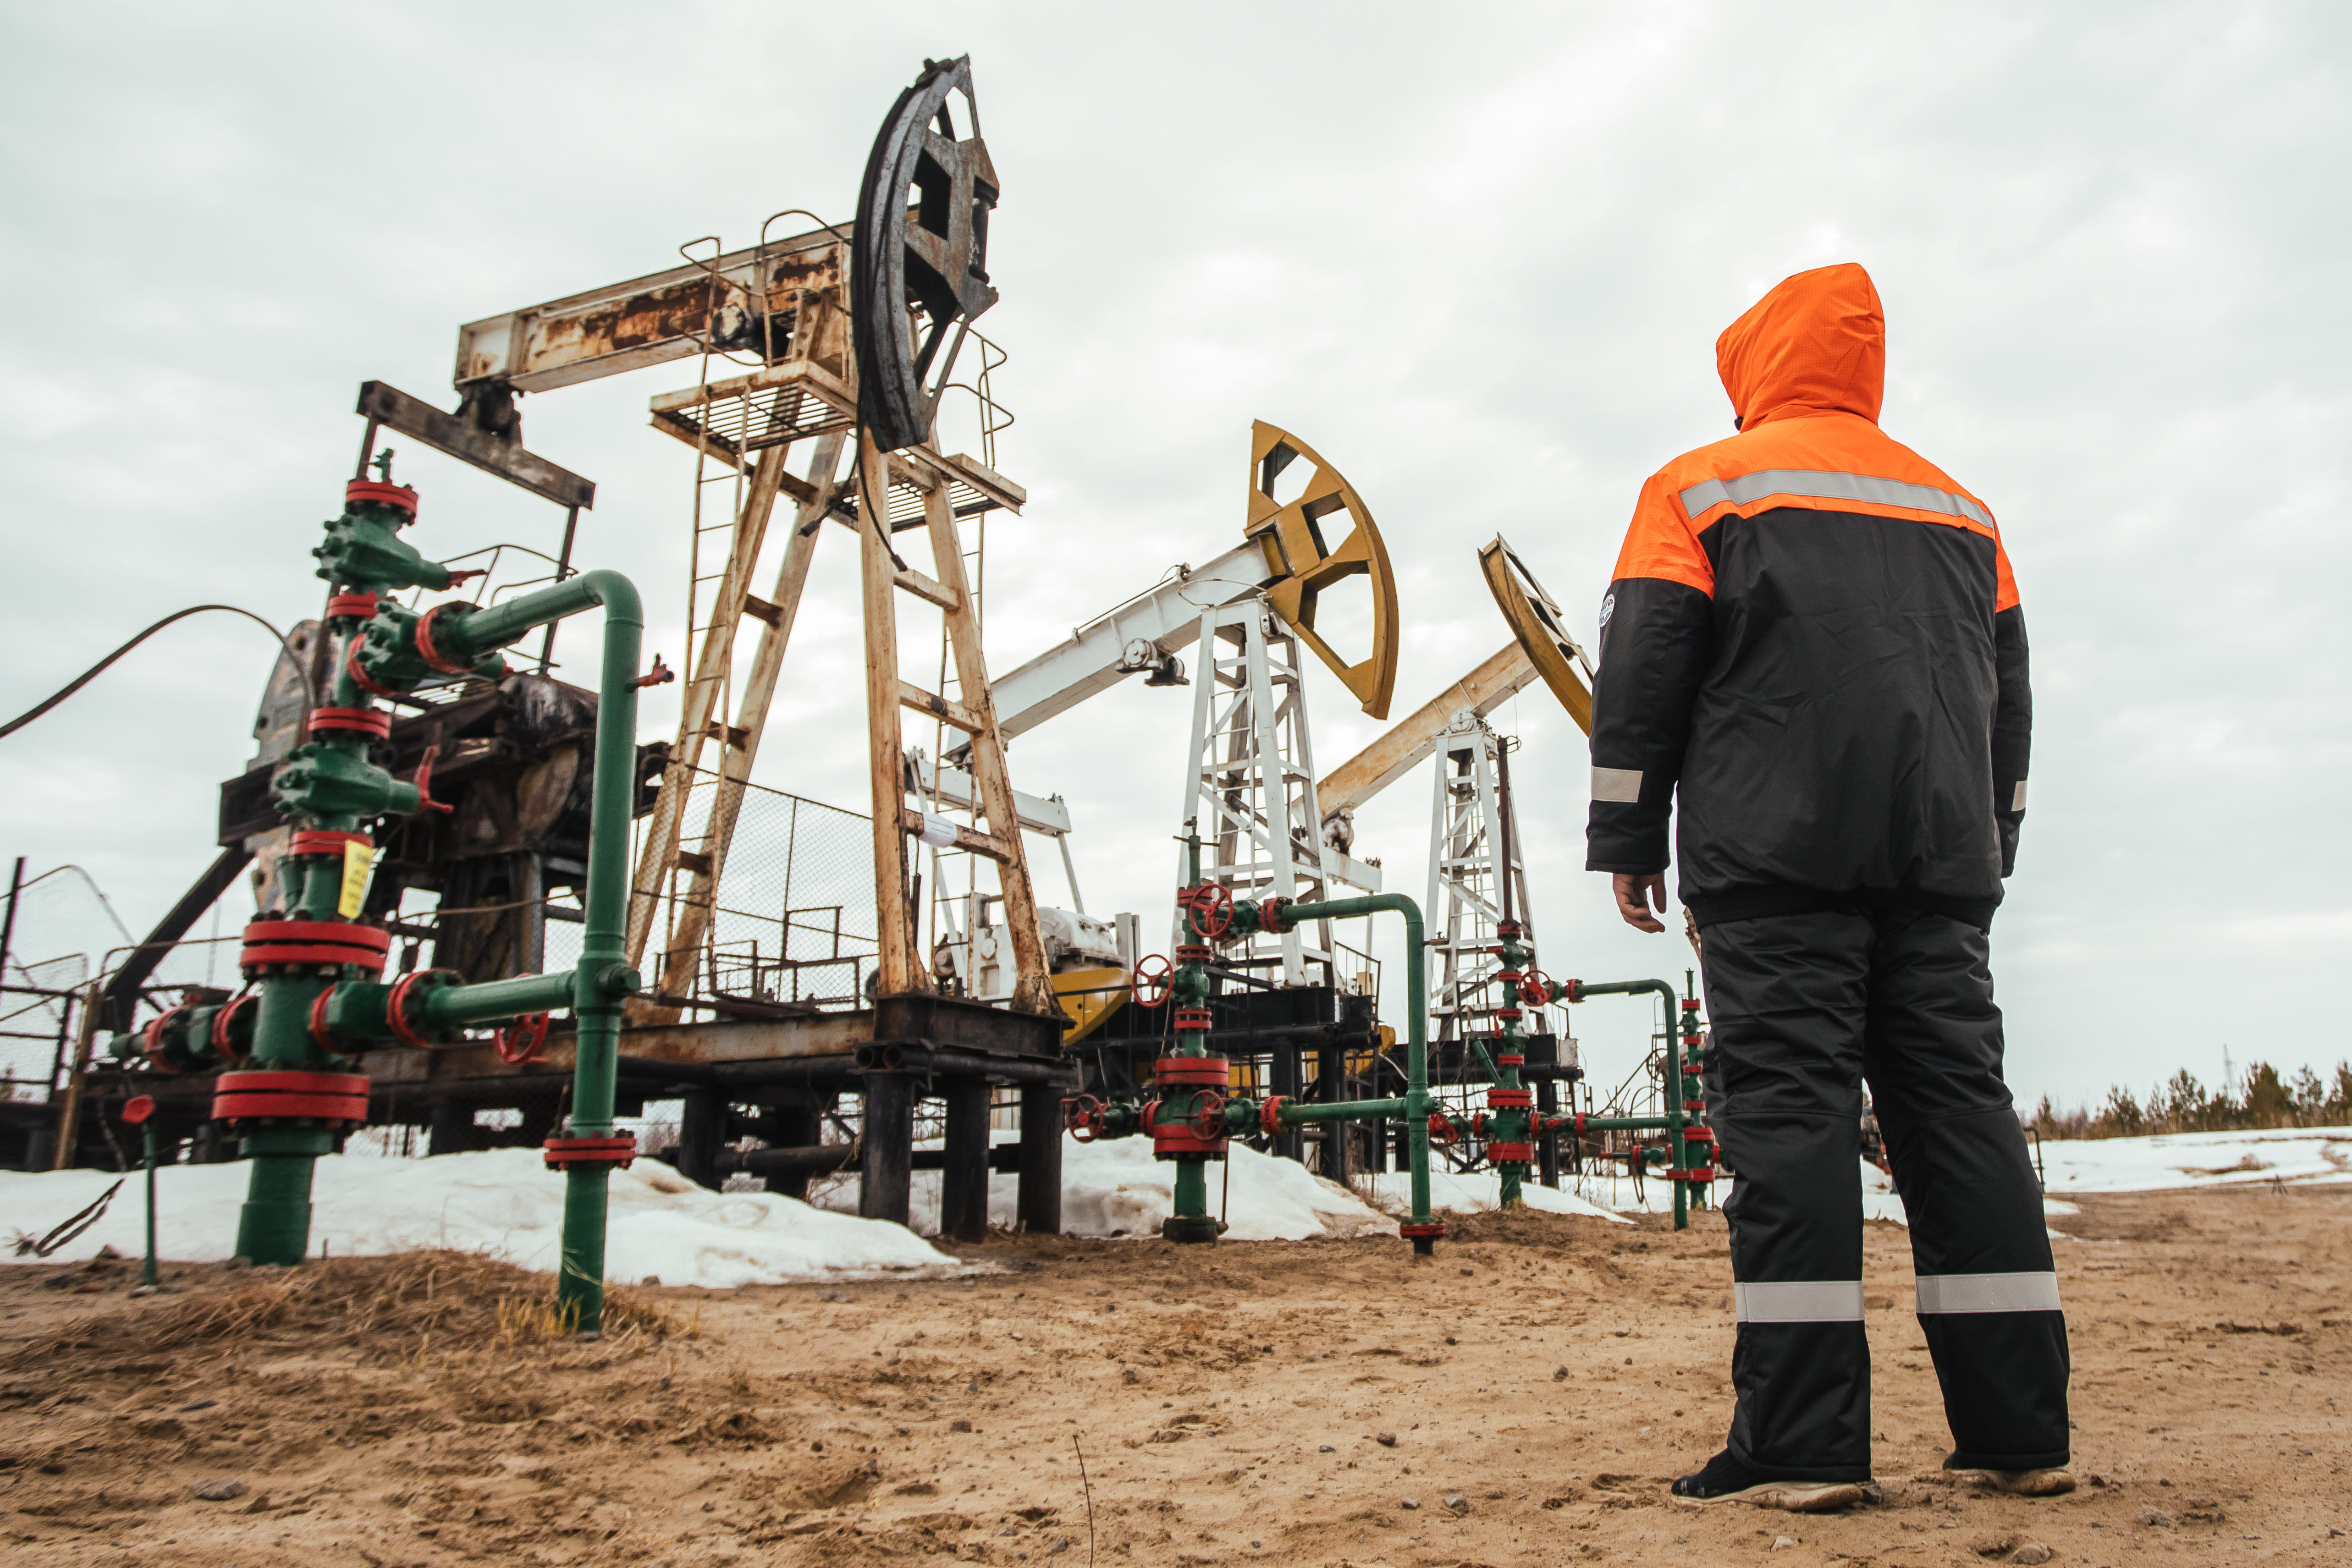 Oil traders have never seen 'insane' market like this before, fear more declines to negative prices